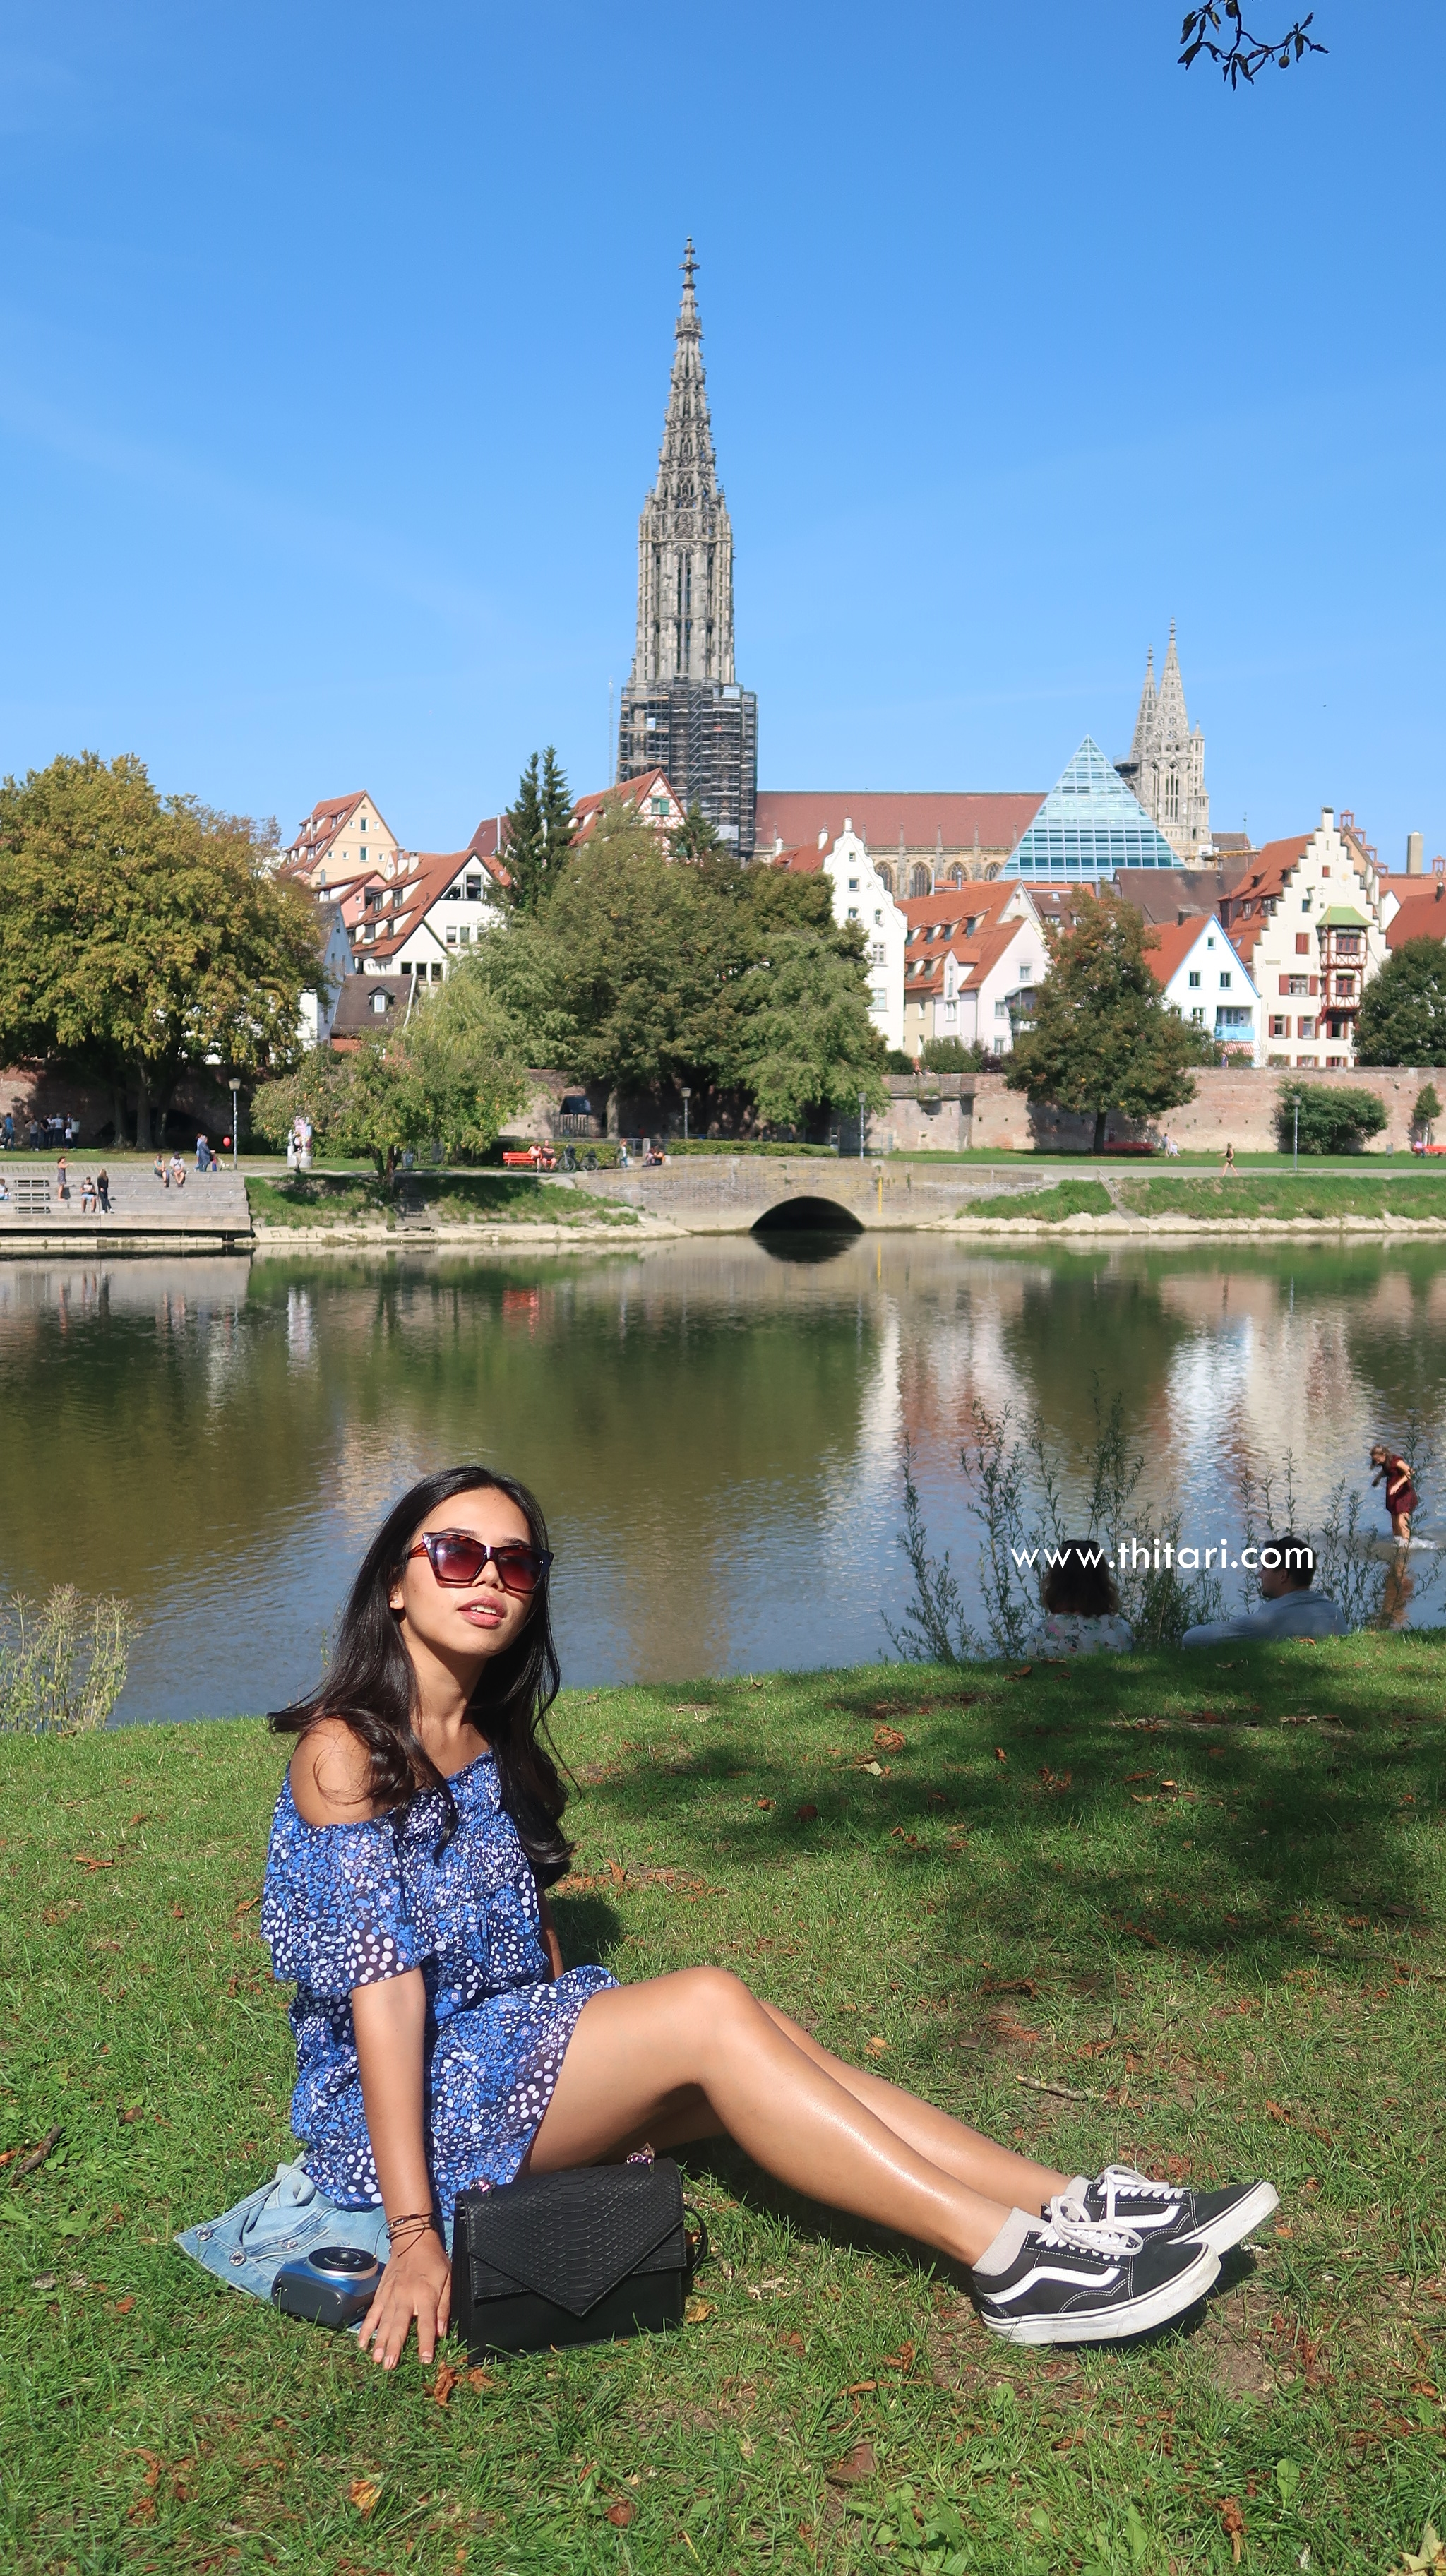 ULM : Unexcpected trip at the beautiful city in Germany